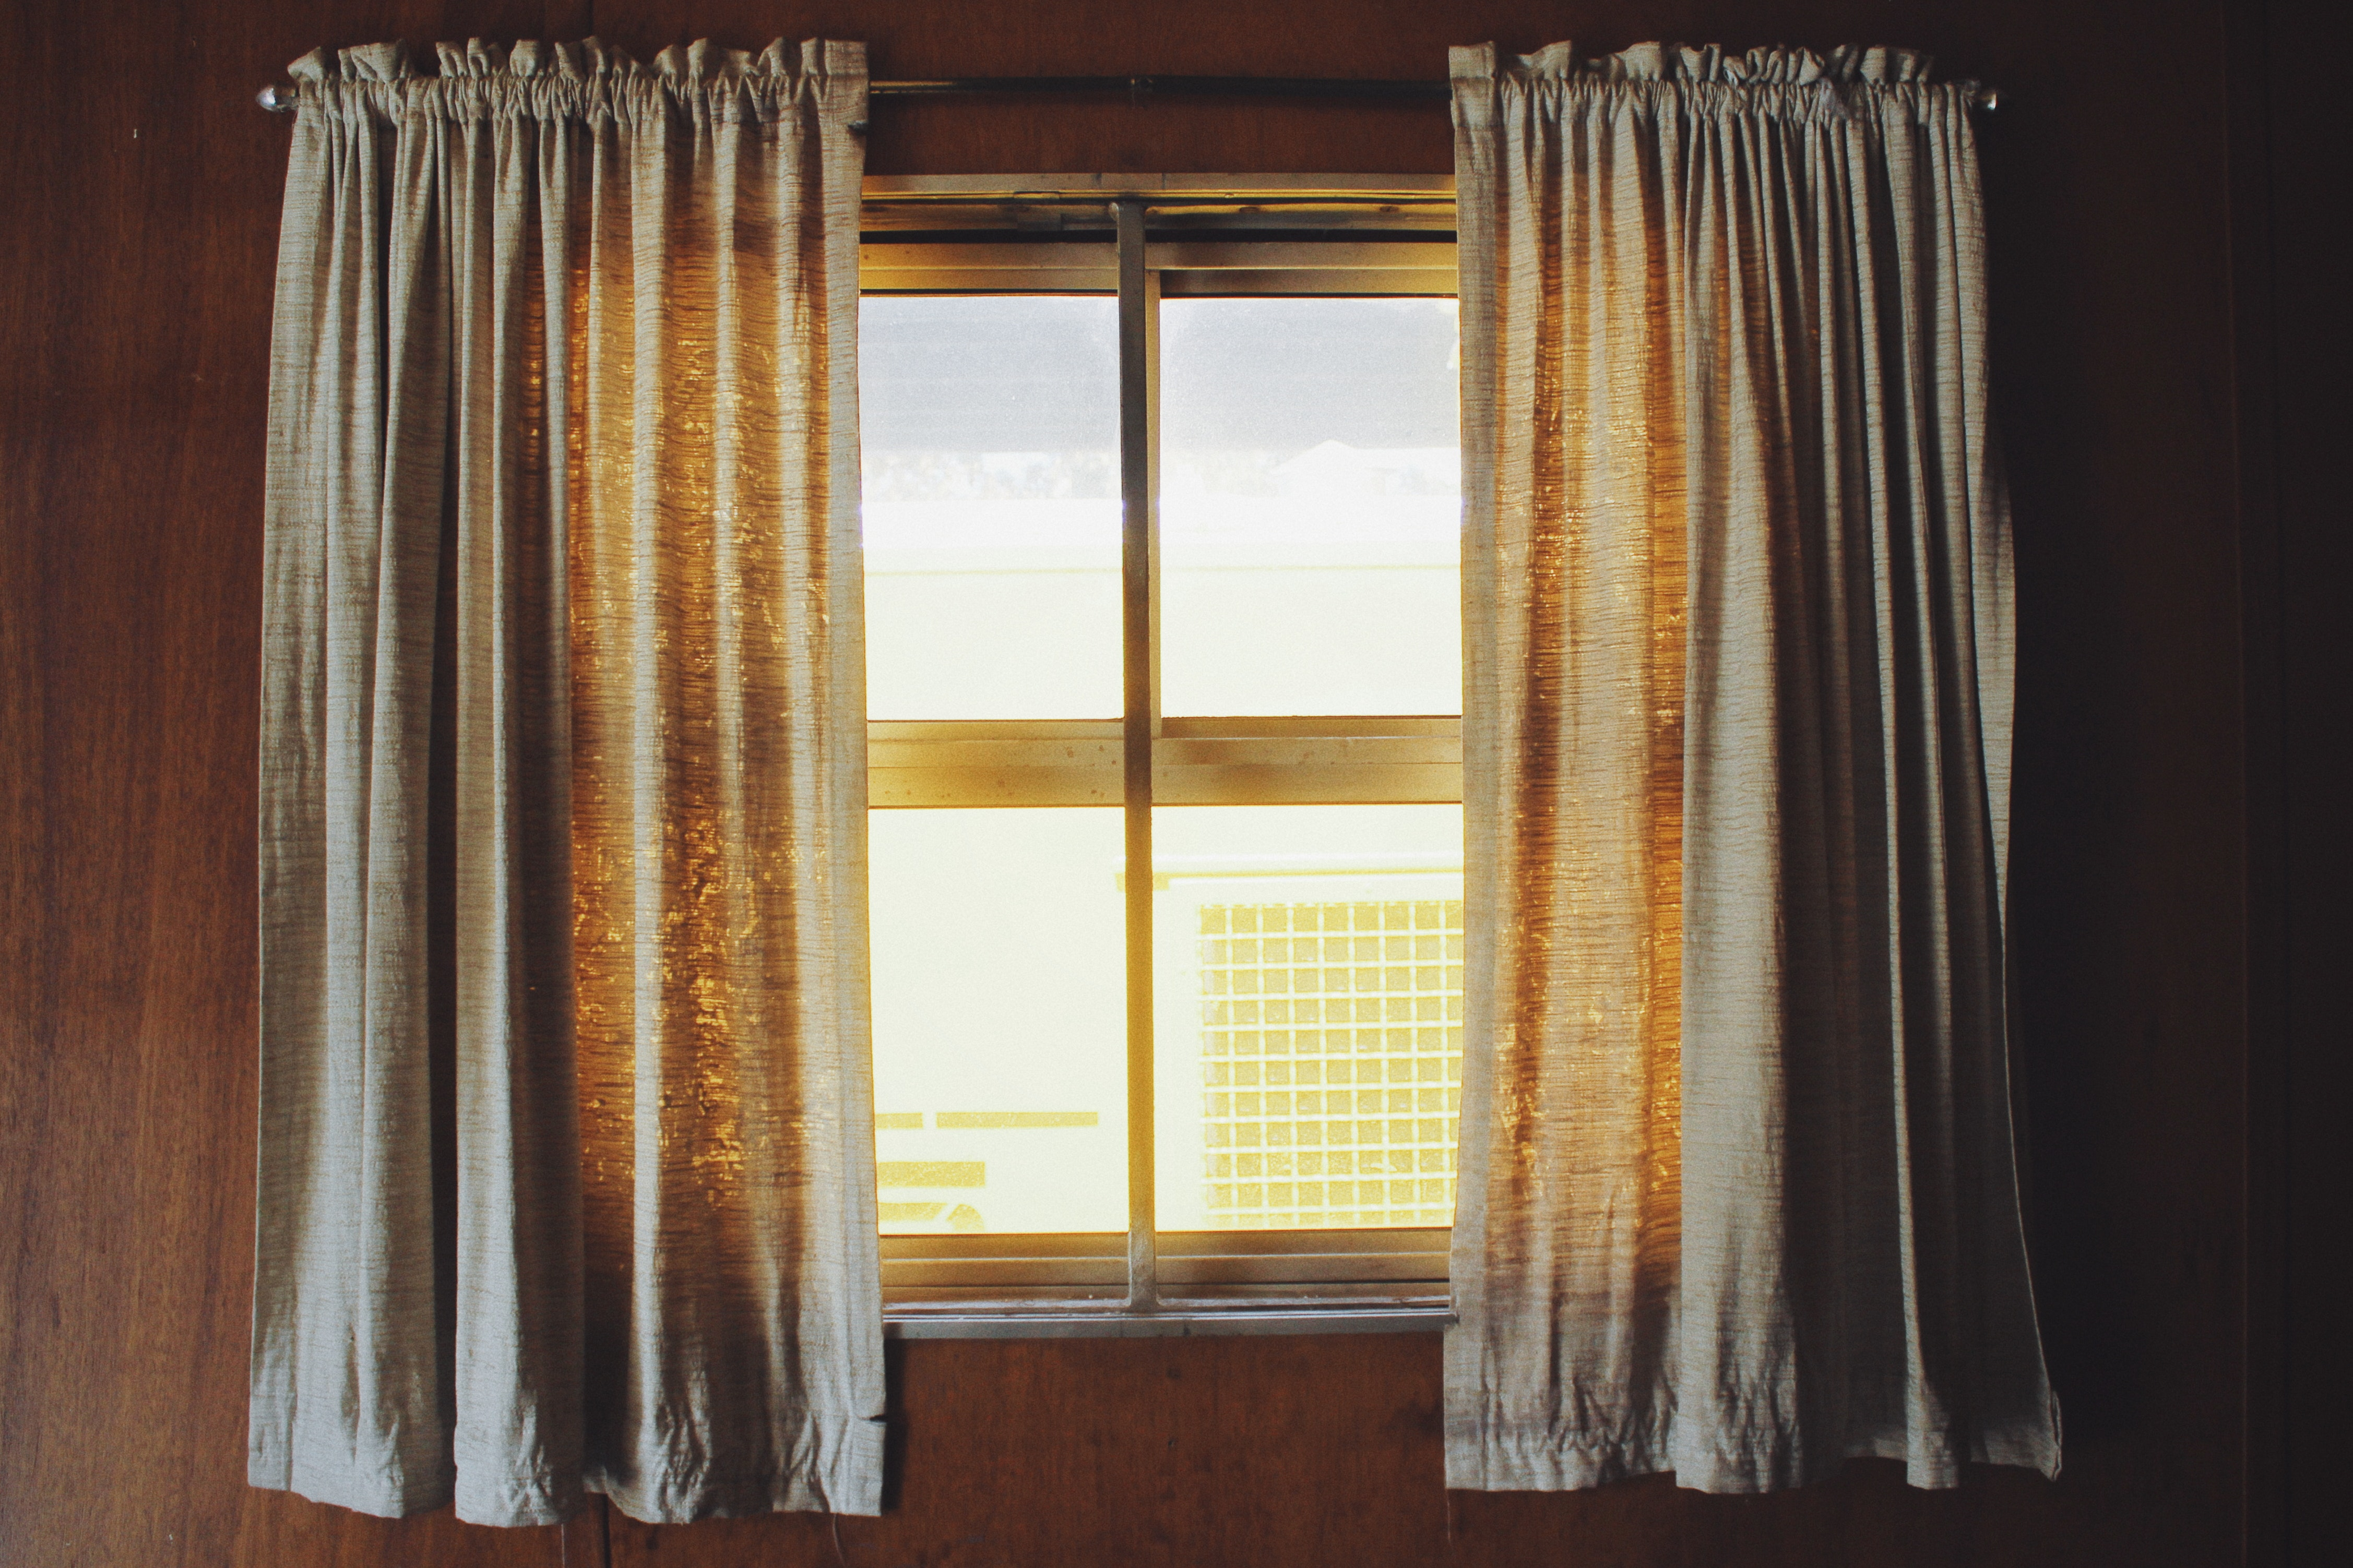 Two White Rod Pocket Curtains, Brown, Inside, Window, Wall, HQ Photo